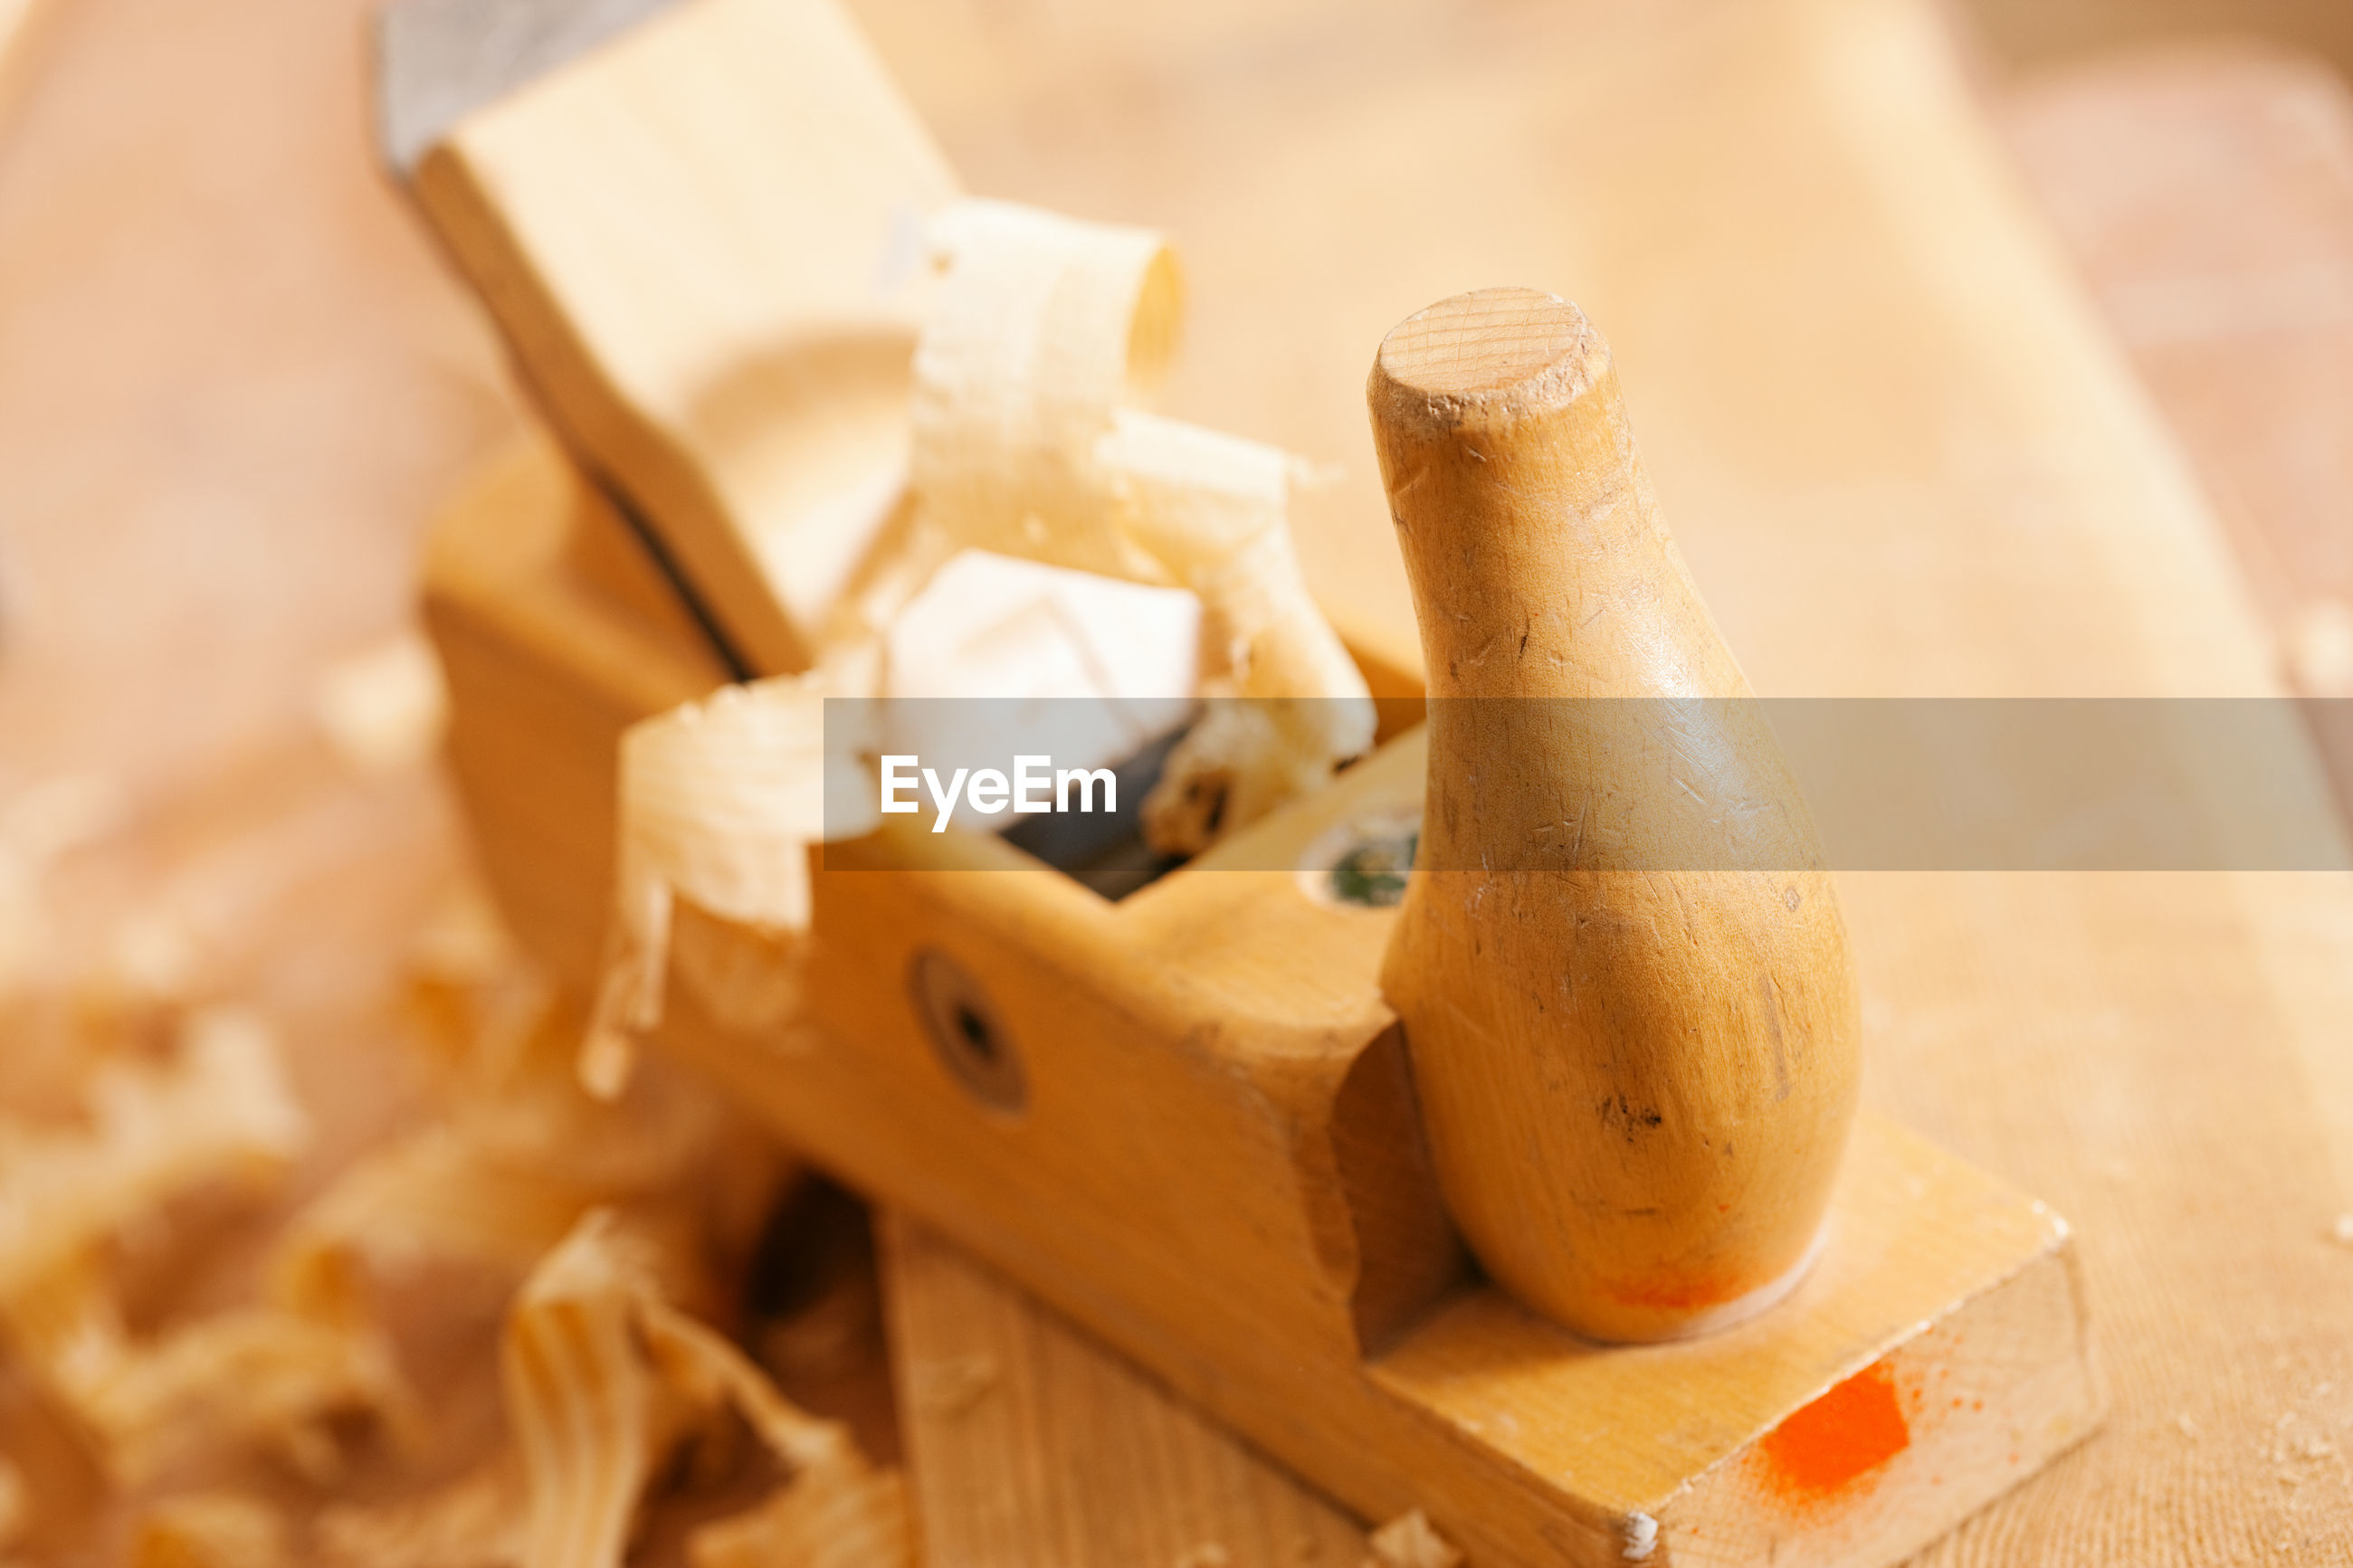 Used wood planer in the workshop of a carpenter with shavings of wood, standing on a workbench